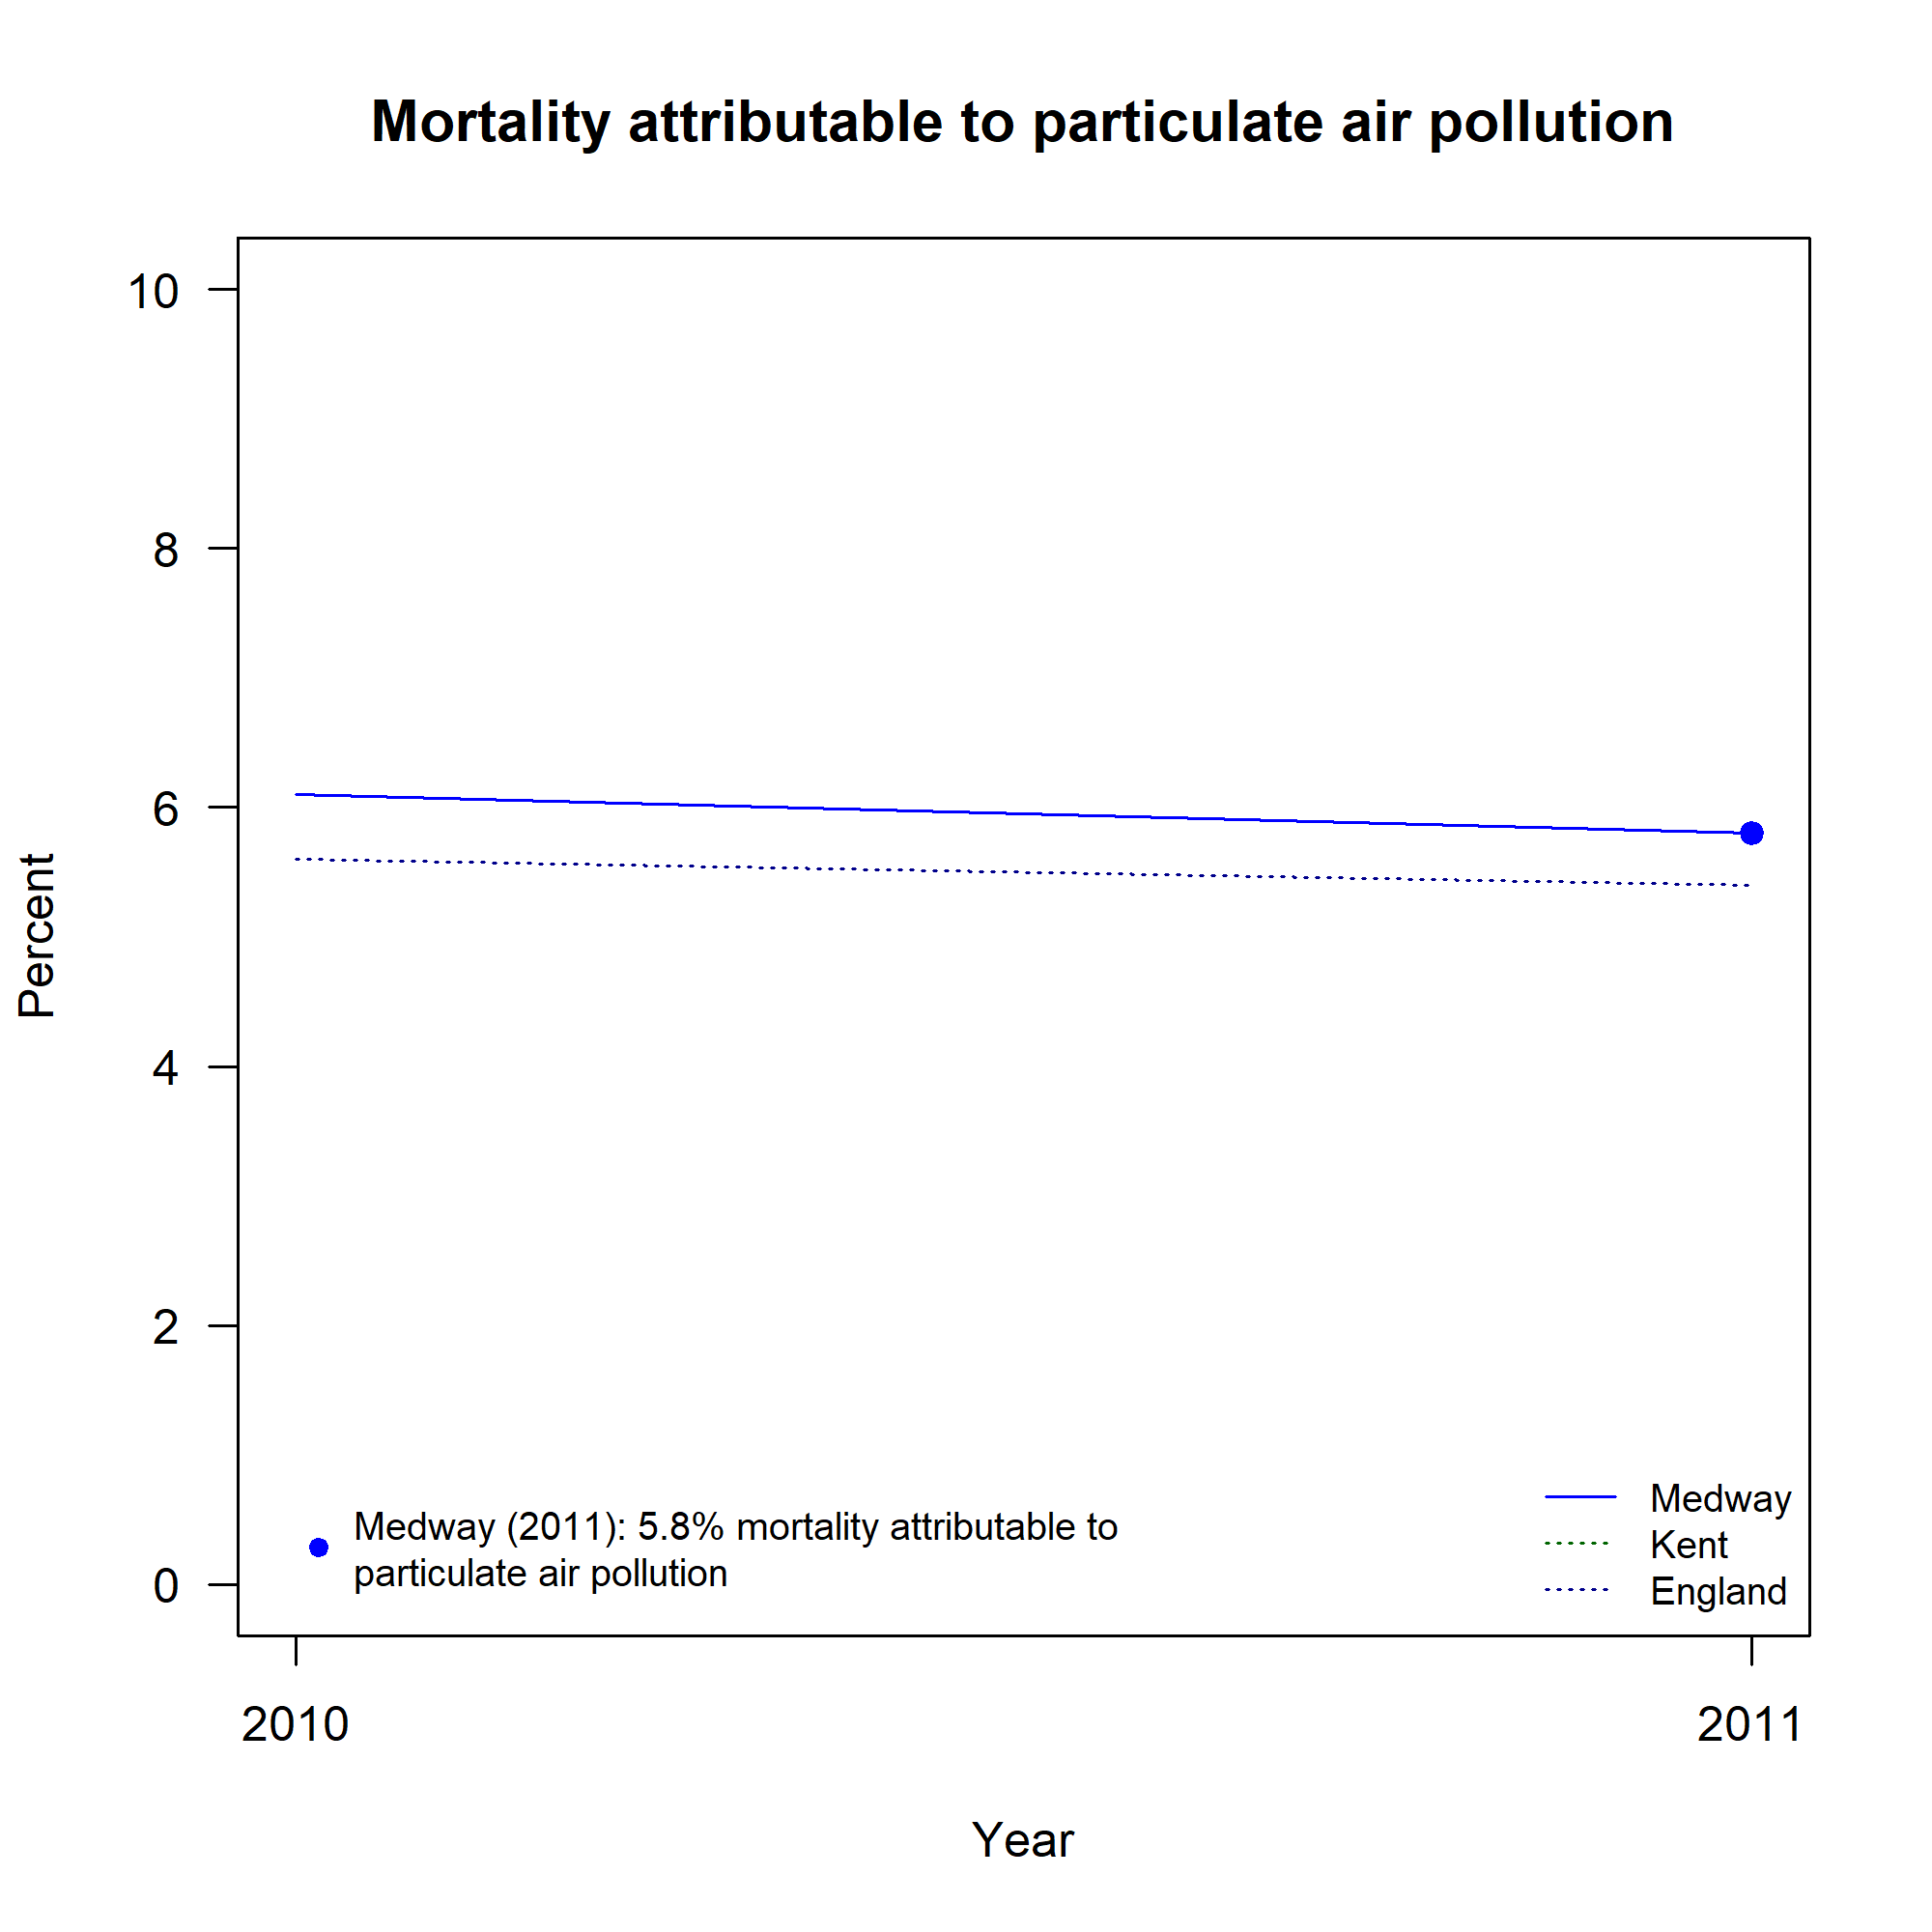 Figure 2: Mortality attributable to particulate air pollution